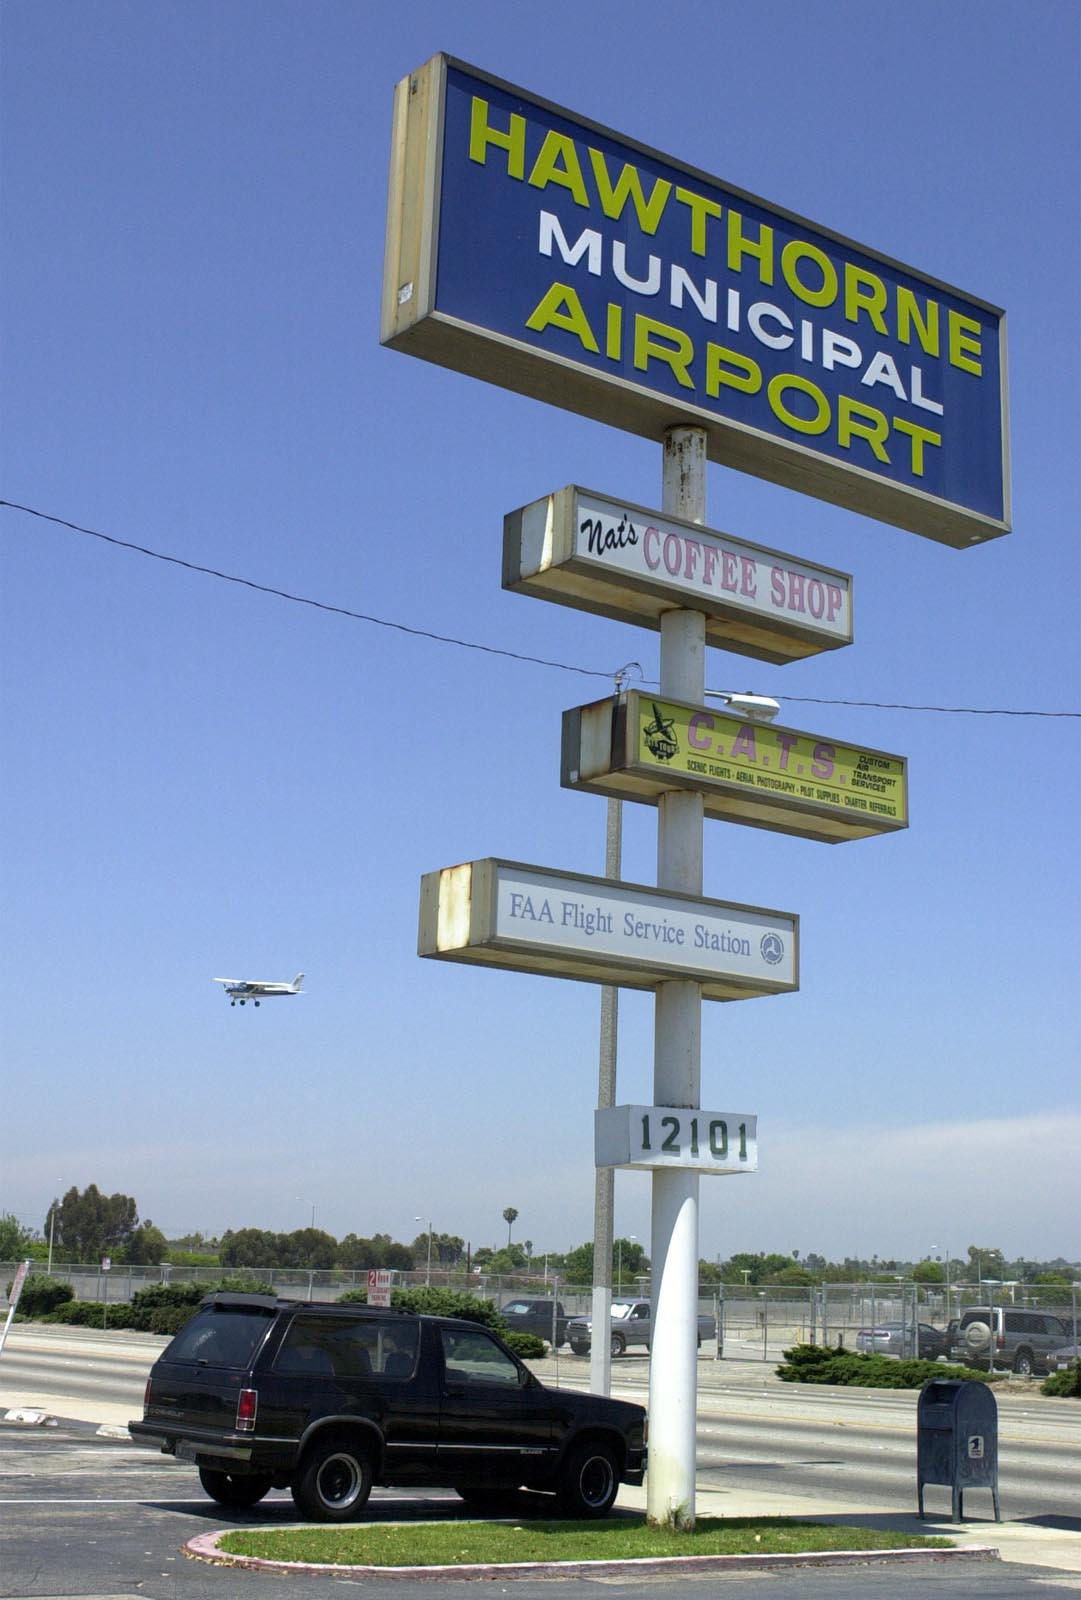 The city decided to put the fate of Hawthorne Municipal Airport in the hands of voters in 2001. File photo, June 25, 2001. (Robert Casillas / Staff Photographer)